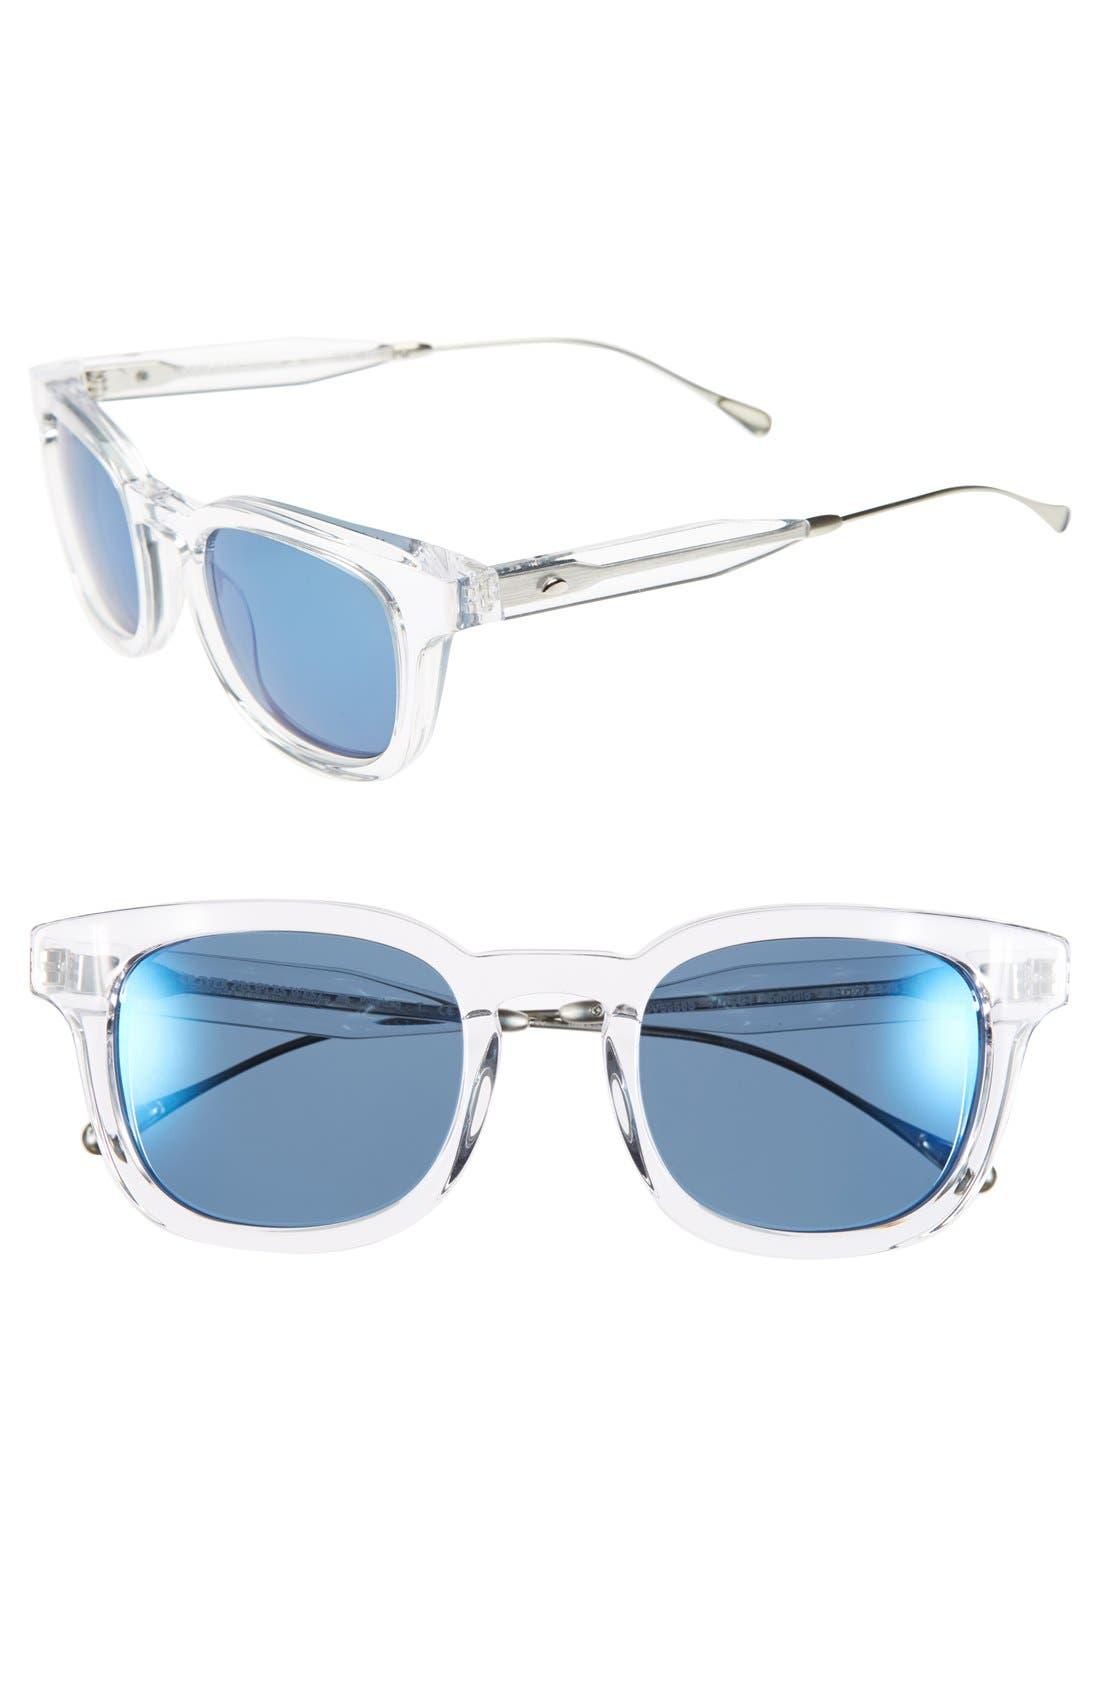 Alternate Image 1 Selected - Oliver Peoples West 'Cabrillo' 49mm Polarized Retro Sunglasses